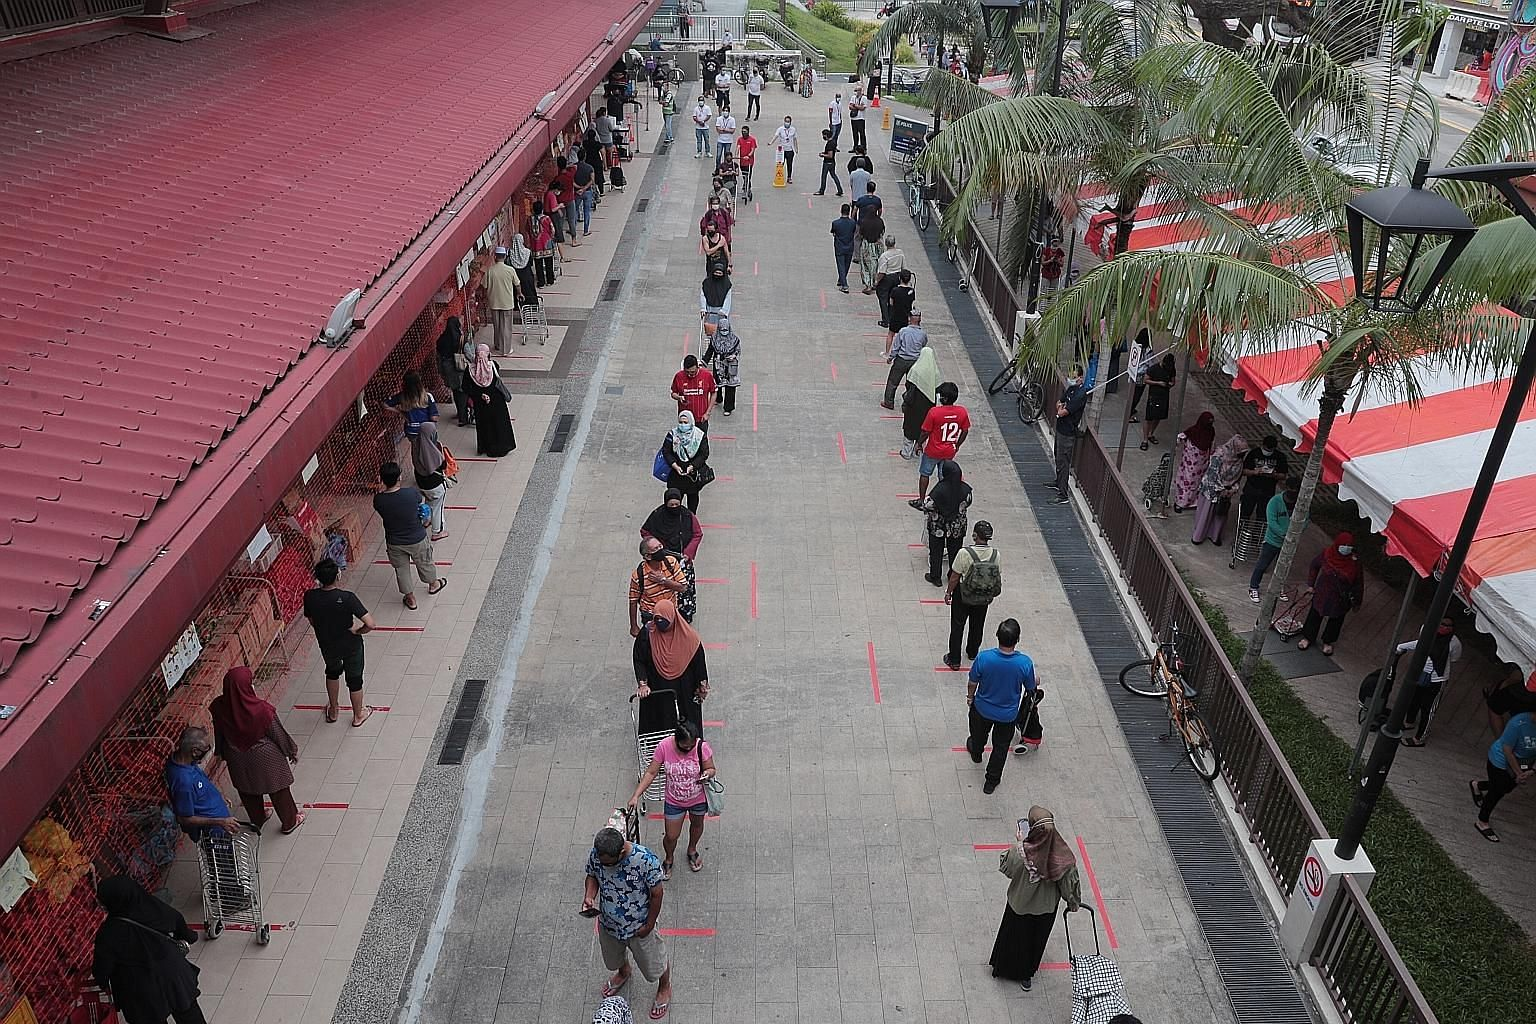 A long queue formed outside Geylang Serai Market yesterday as shoppers waited to enter the popular wet market ahead of Hari Raya Aidilfitri celebrations tomorrow. The queue spilled over to the pedestrian walkways as people lined up to purchase necess